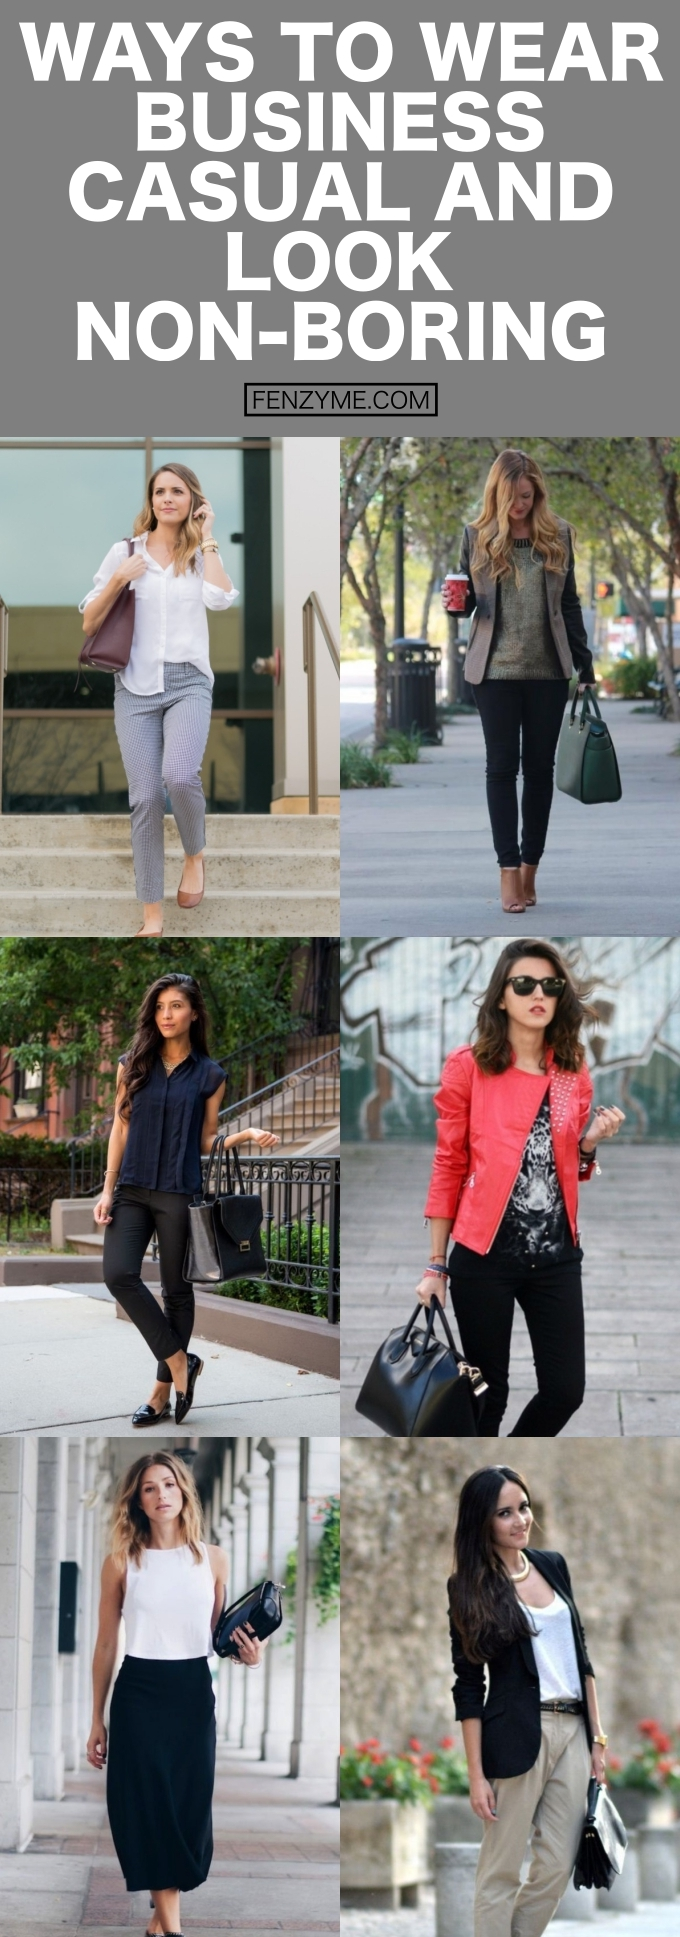 Ways to wear business casual and look non boring